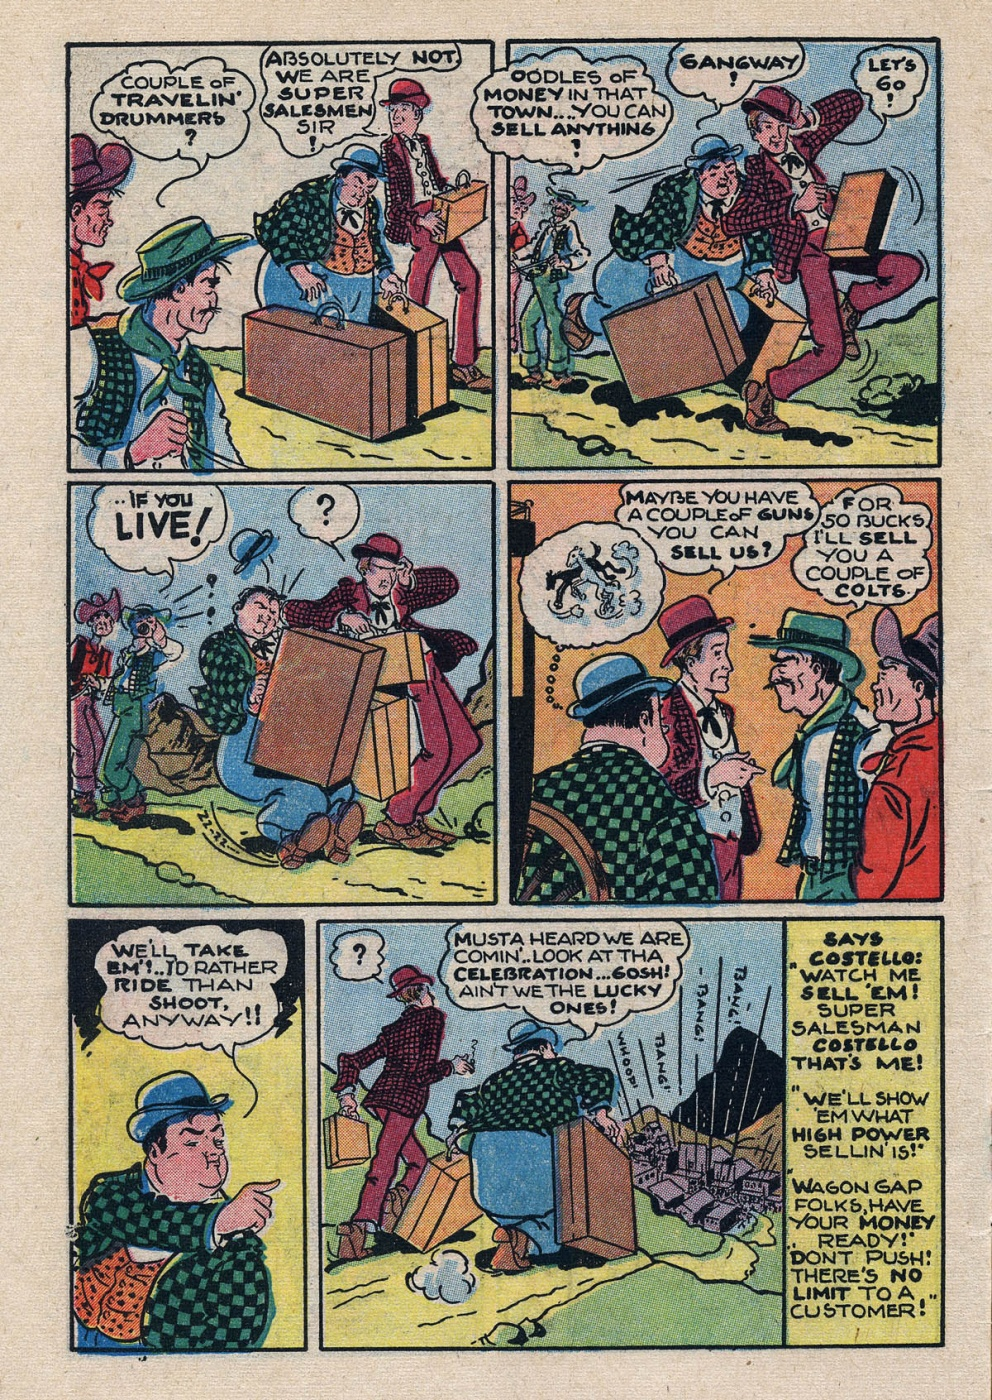 Funny Comic Strips - Abbott and Costello 001 (Feb 1948) 4